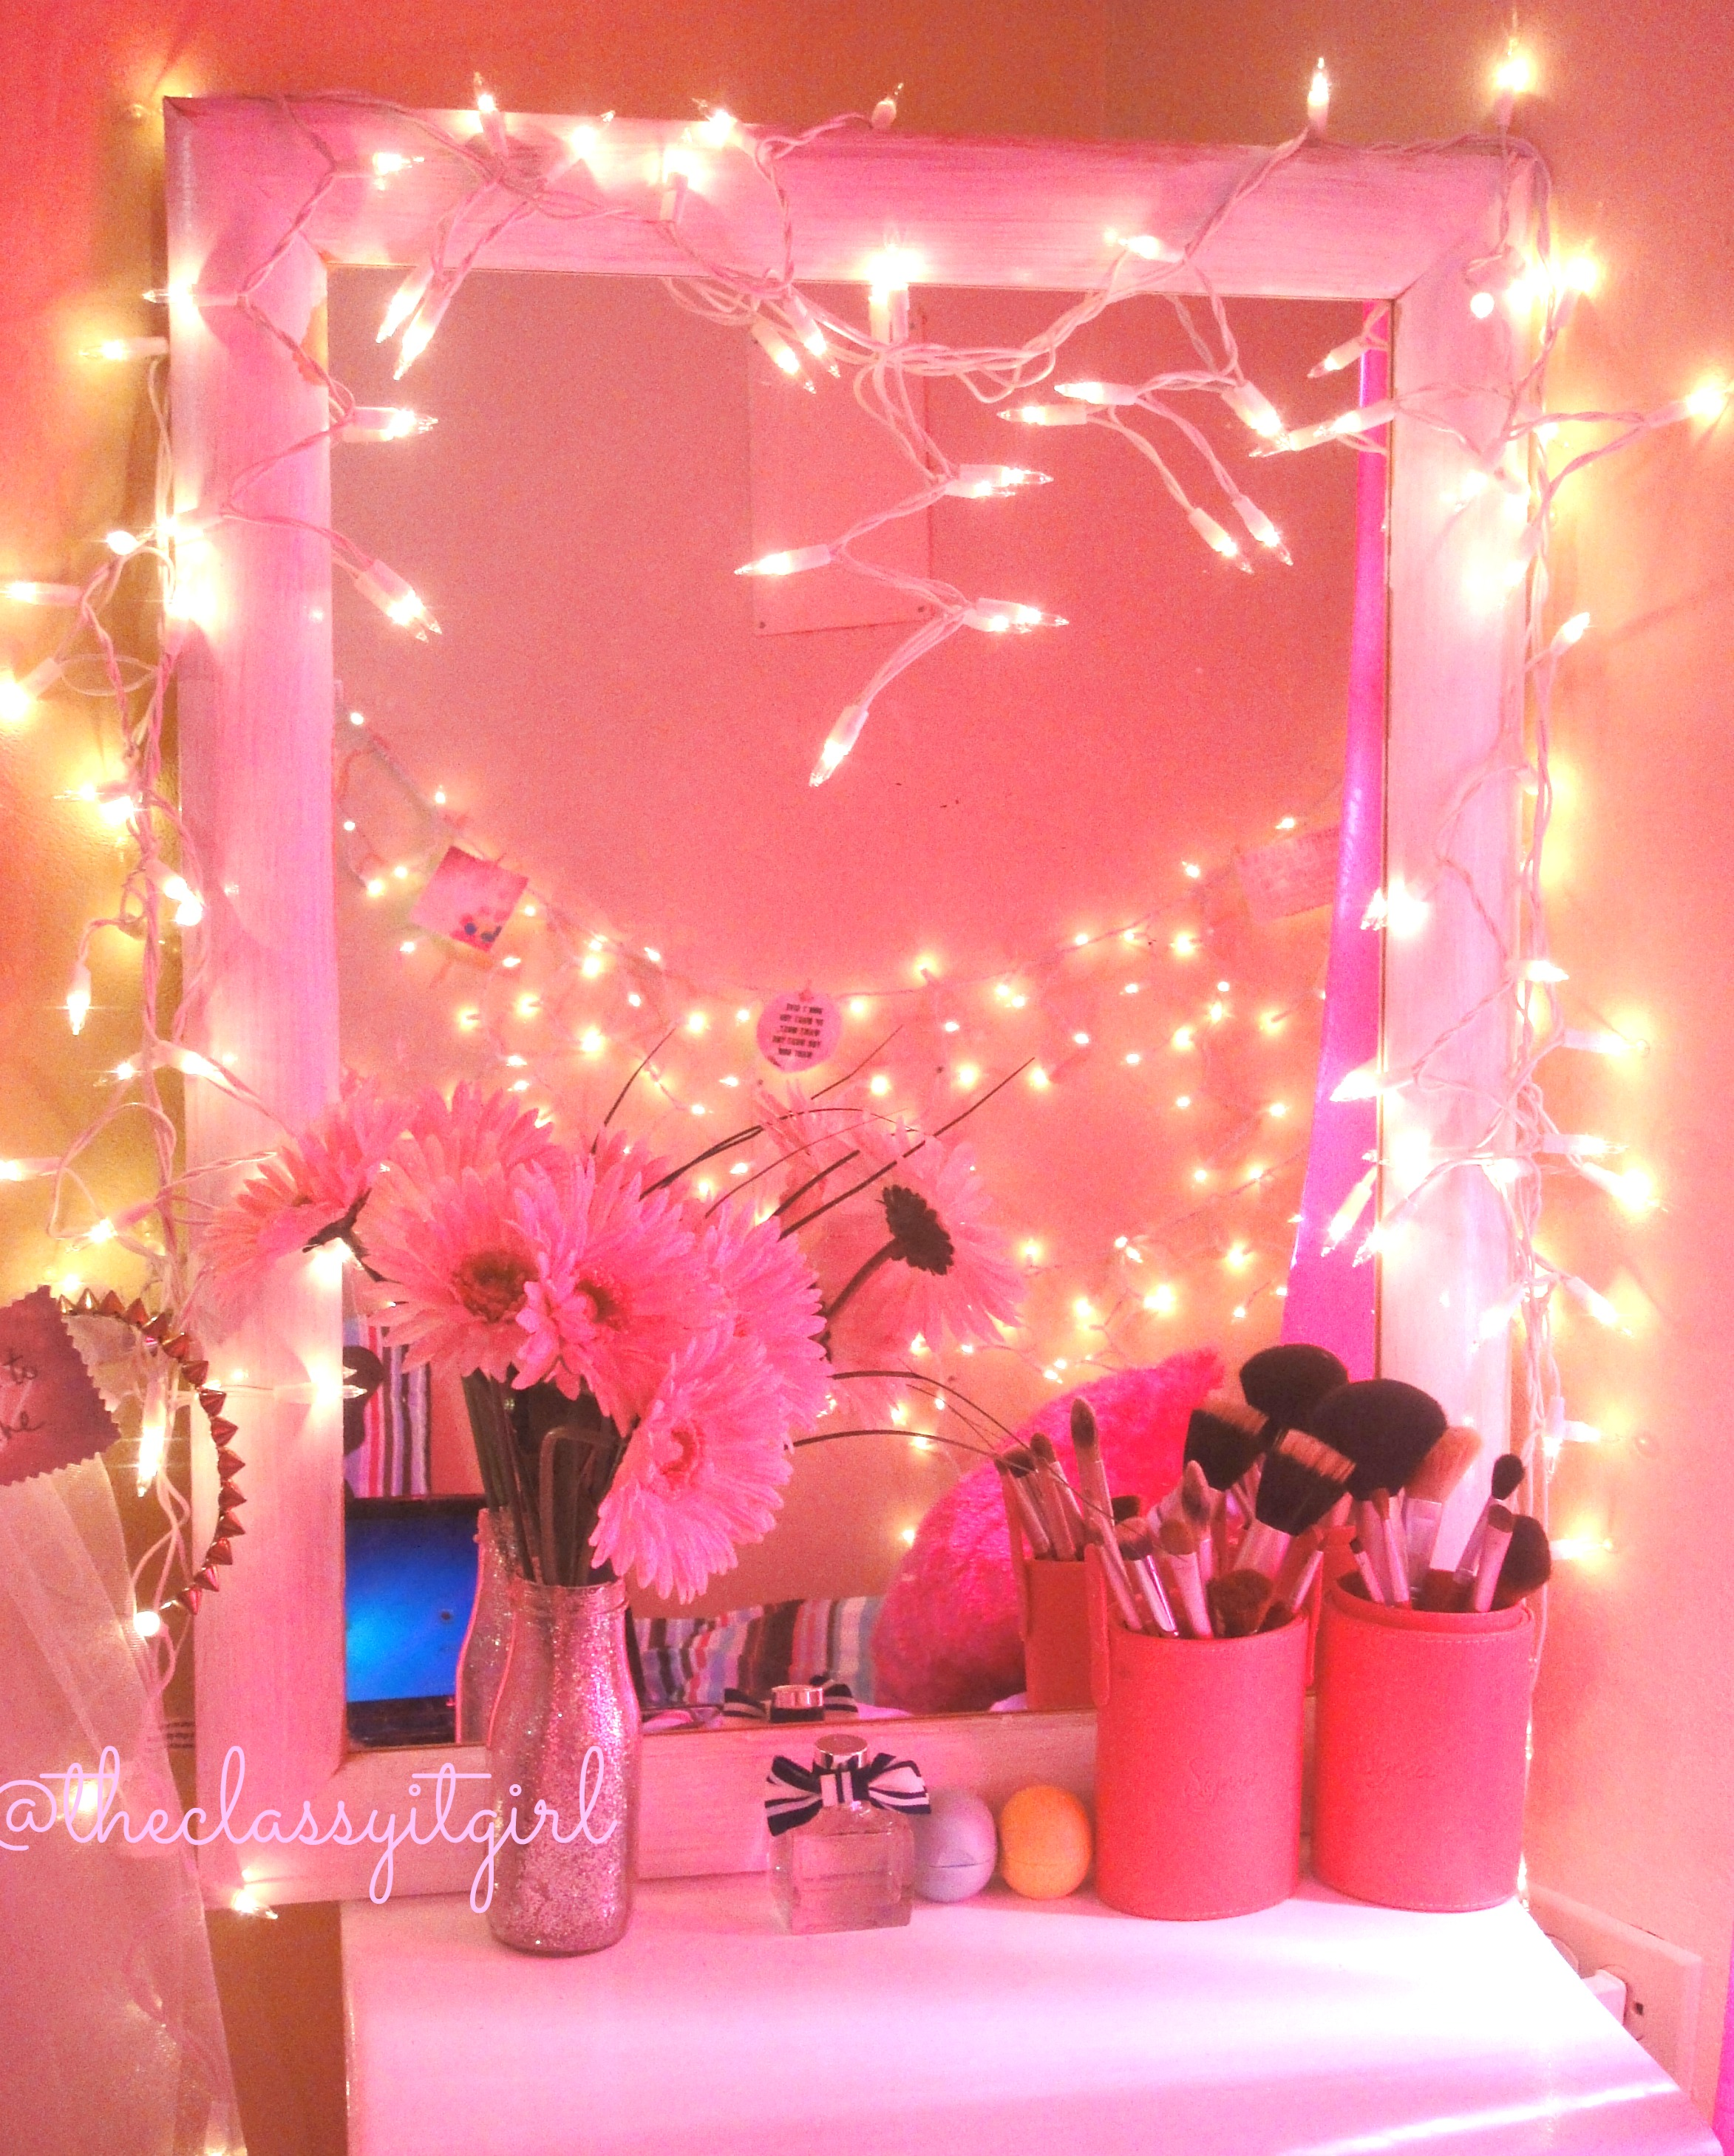 Dormspiration diy room d cor the classy it girl for Stuff to decorate room